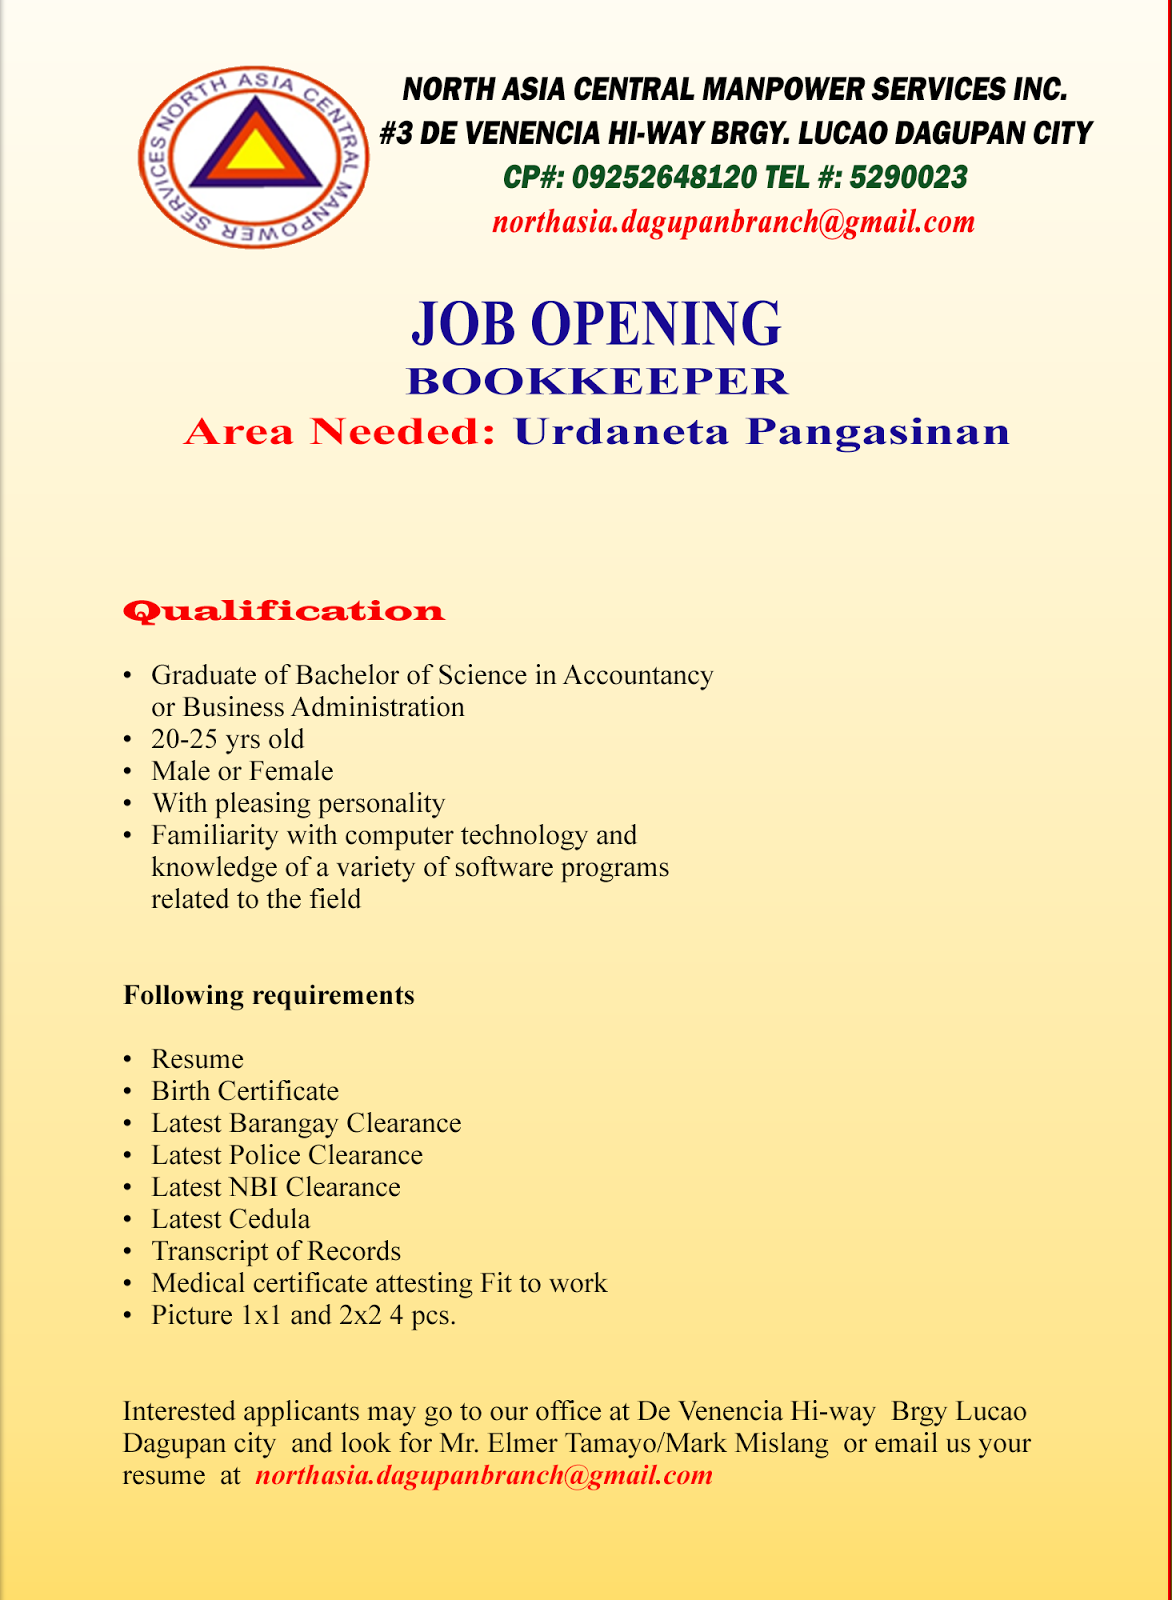 jobs opening bookkeeper urdaneta pangasinan january 2016